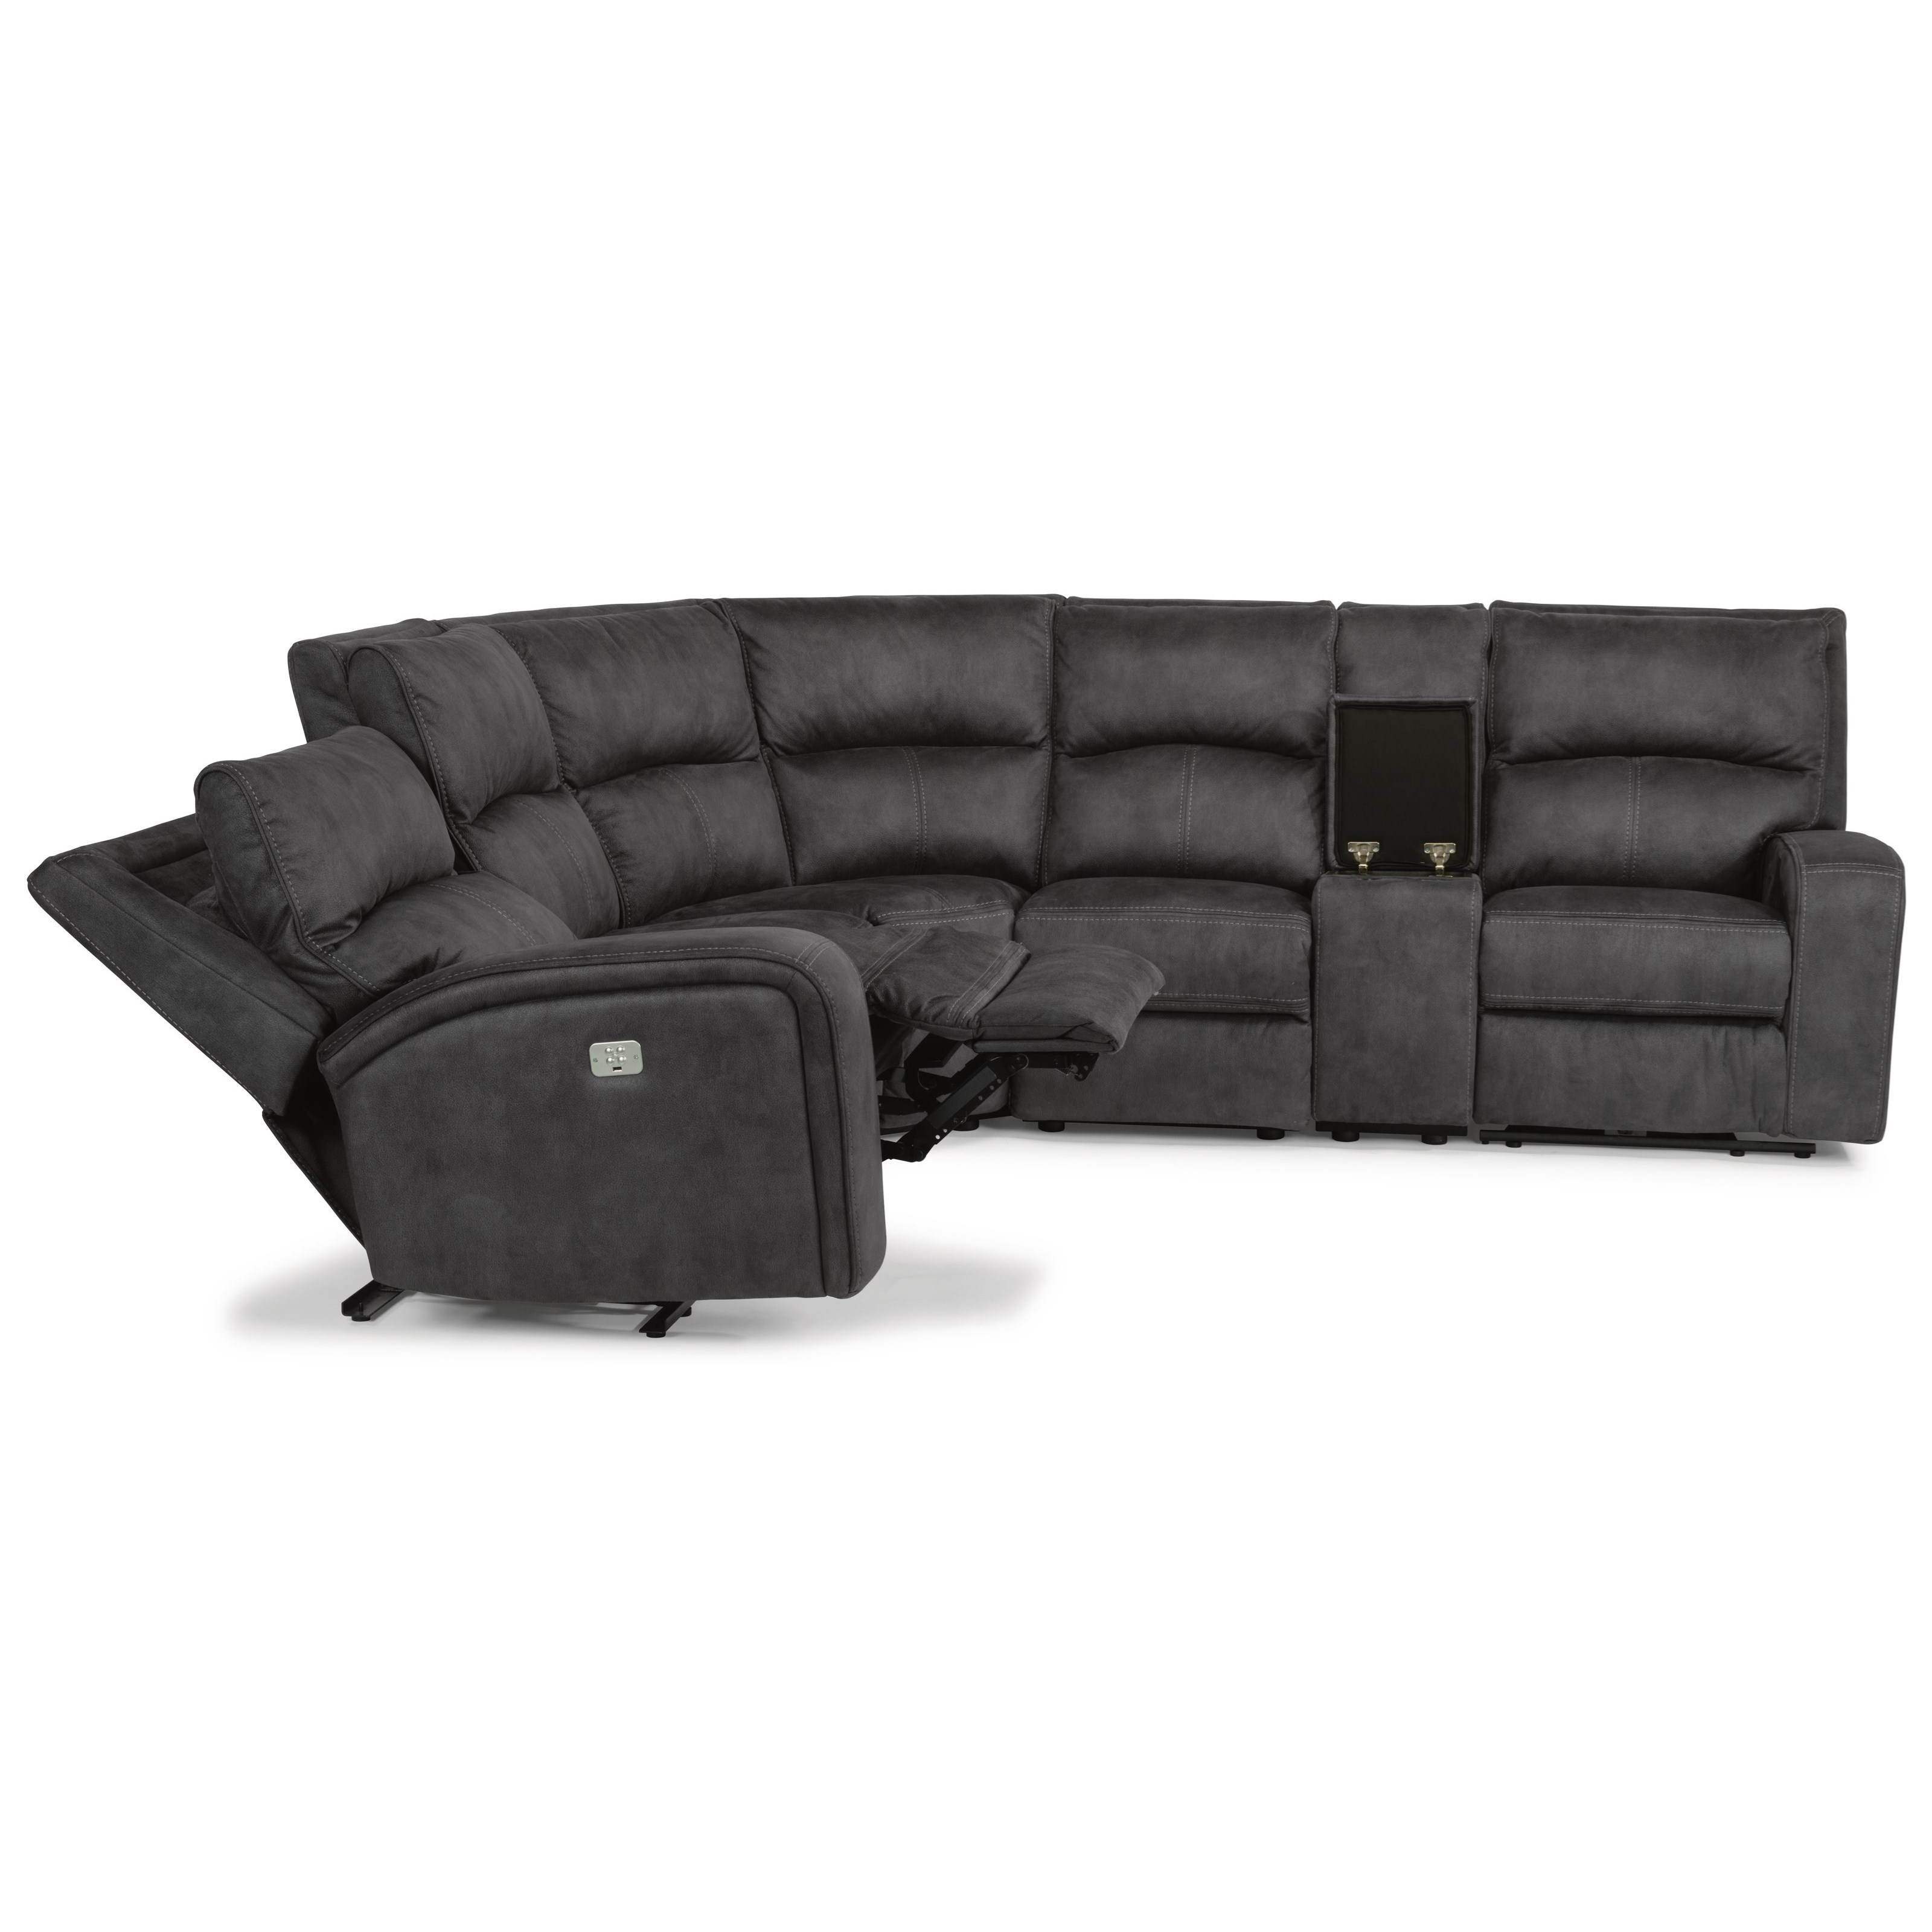 Flexsteel Latitudes-RhapsodyPower Reclining L-Shaped Sectional